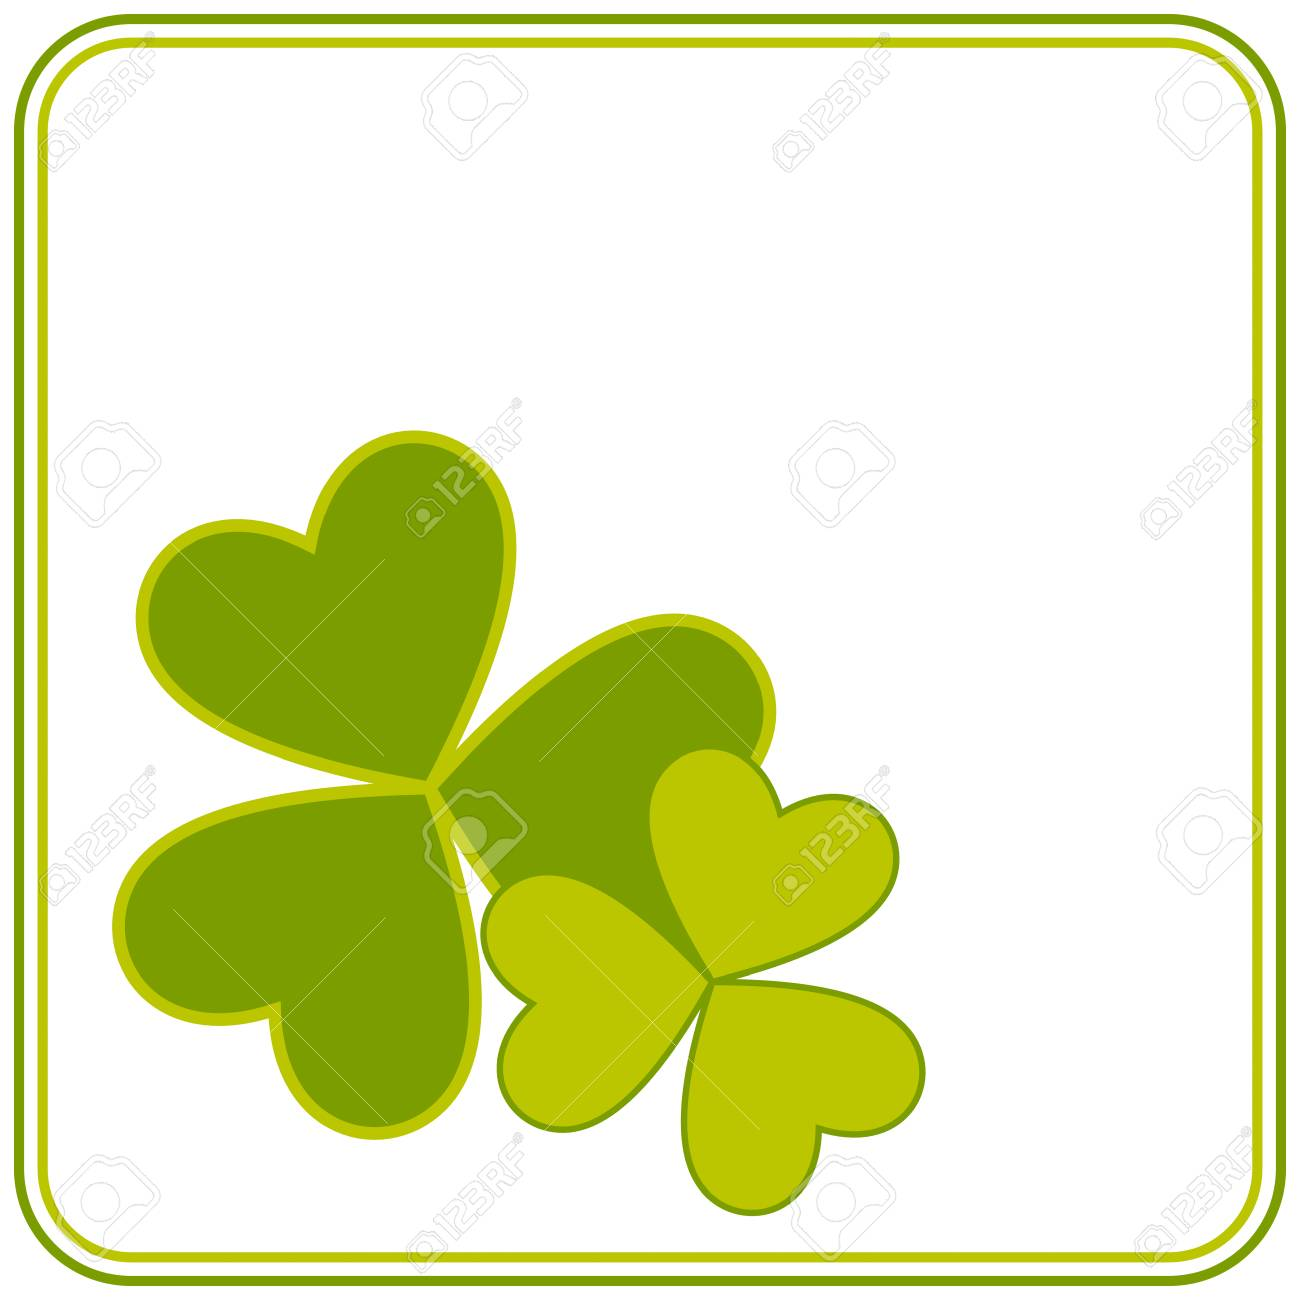 St. Patrick's Day design Stock Vector - 2607514